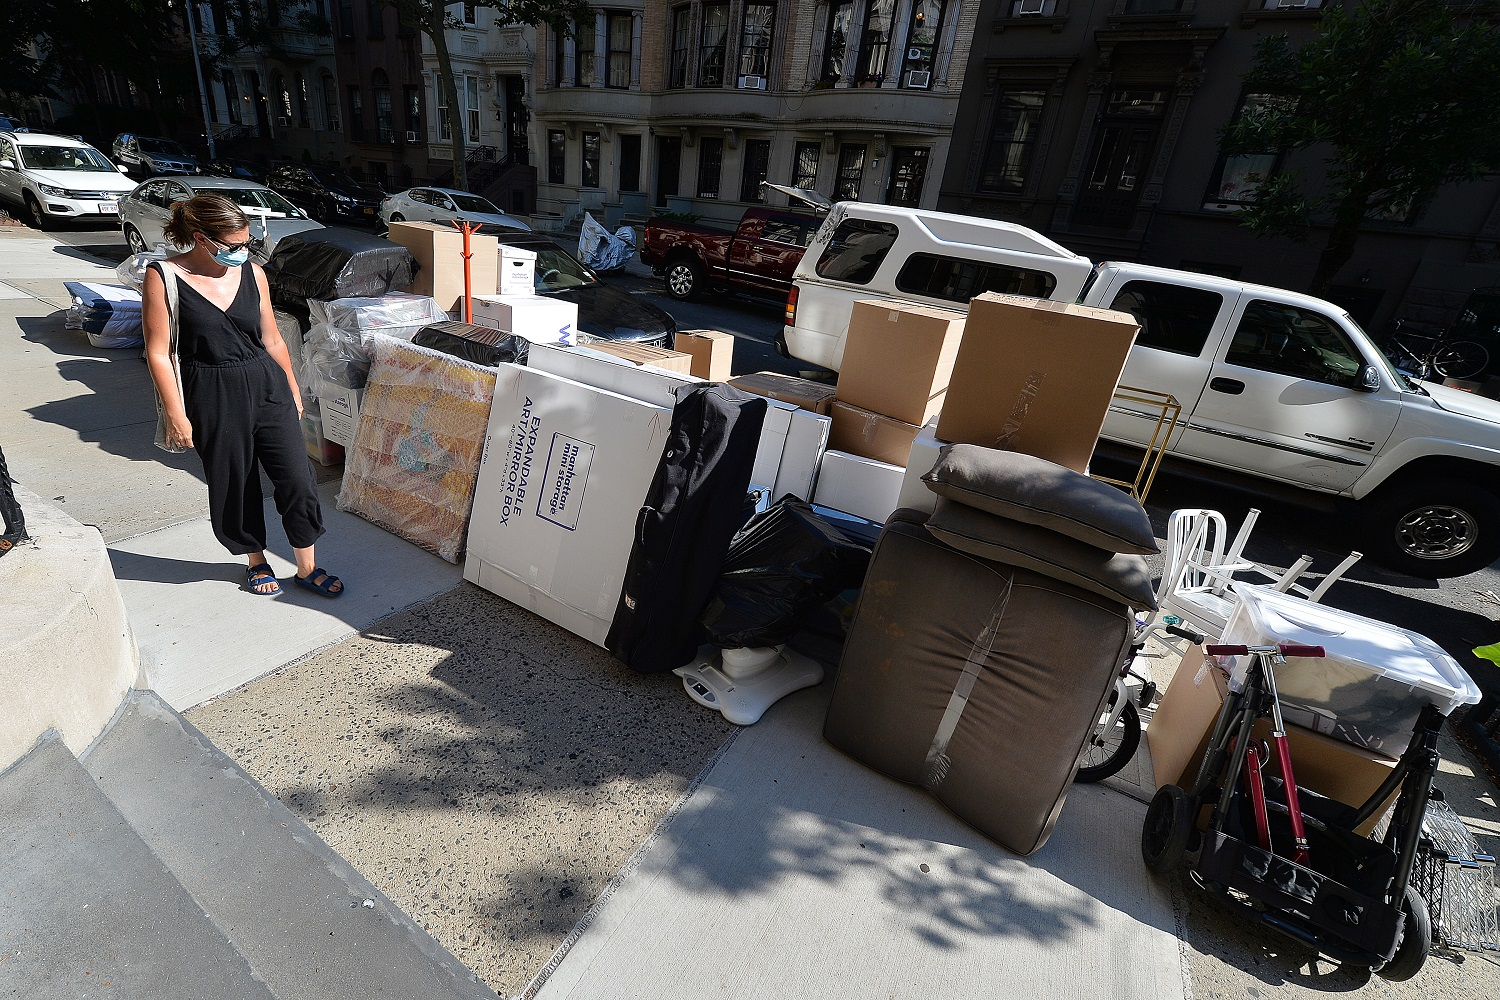 "A woman wearing a mask in the time of COVID-19, walks past Moving boxes stacked in front of an Upper West Side brownstone, waiting for movers to finish packing the belongings of former tenants that have already relocated out of state, New York, NY, July 13, 2020. Complicated by the economic impact of the COVID-19 pandemic, months of ""shelter in place"", daily protests, social clashes and and the slow reopening of the economy, have forced many New Yorkers to leave a city where rents are high and future job opportunities are difficult to predict. (Anthony Behar/Sipa USA)No Use UK. No Use Germany."